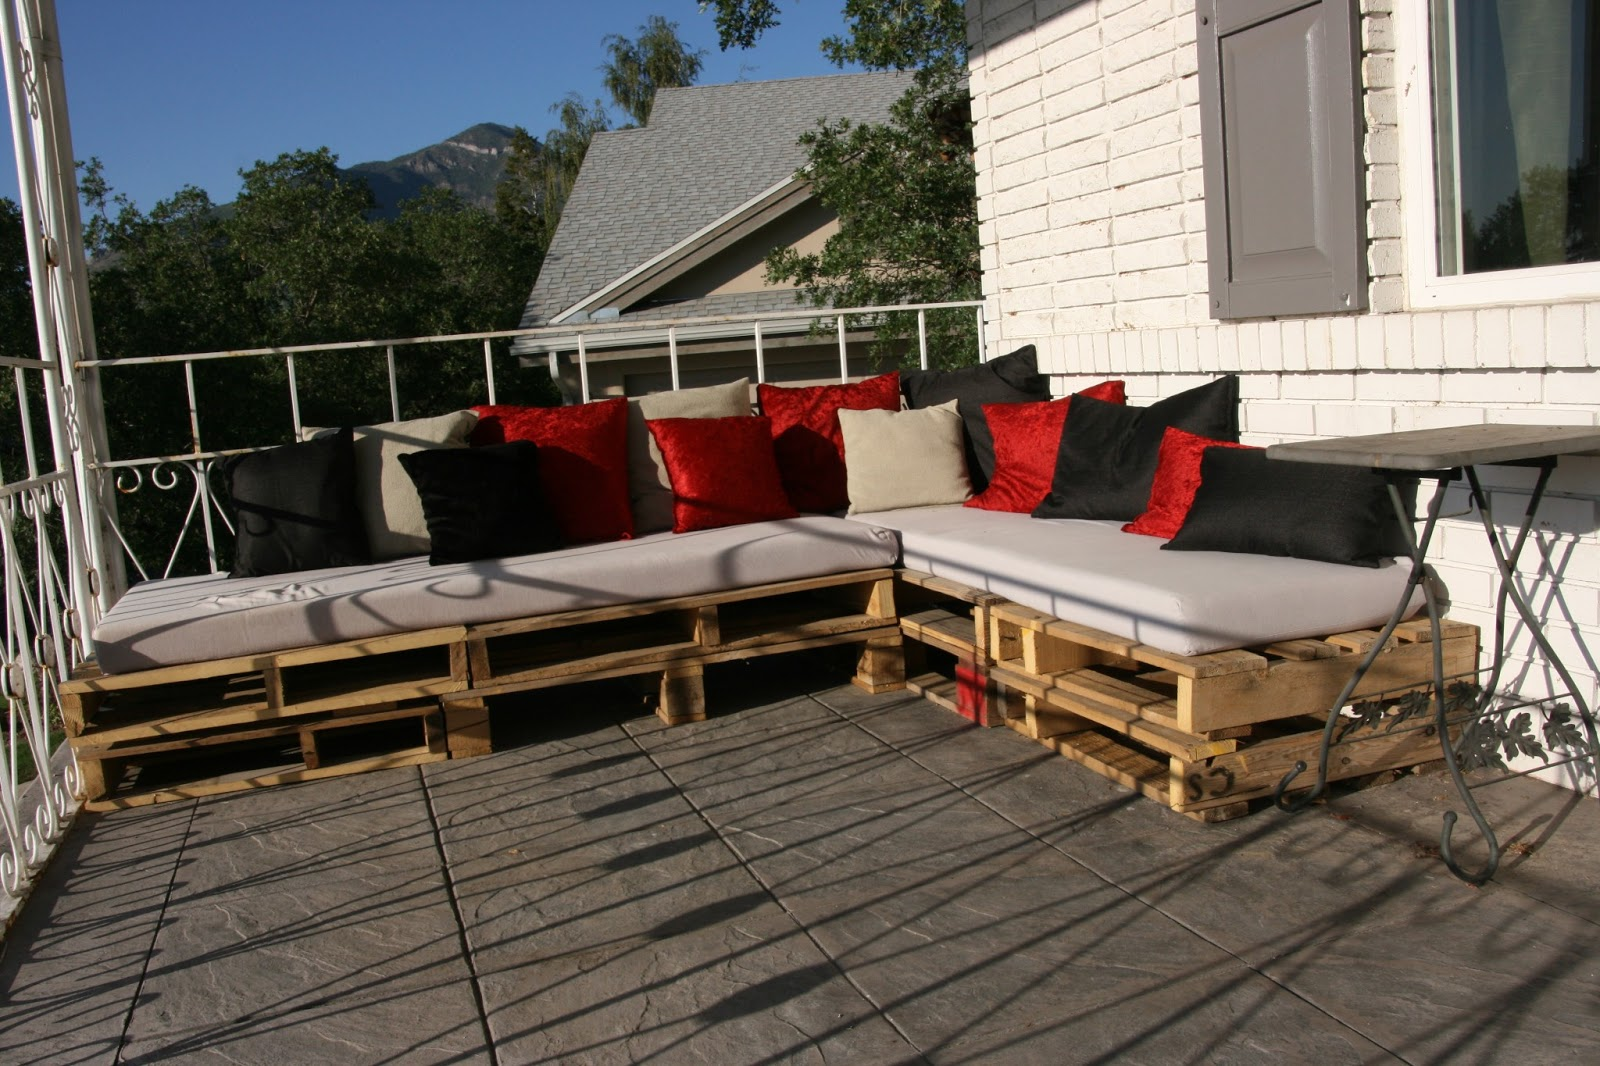 Pallet patio sectional - Diy Recycled Wood Pallet Sectional